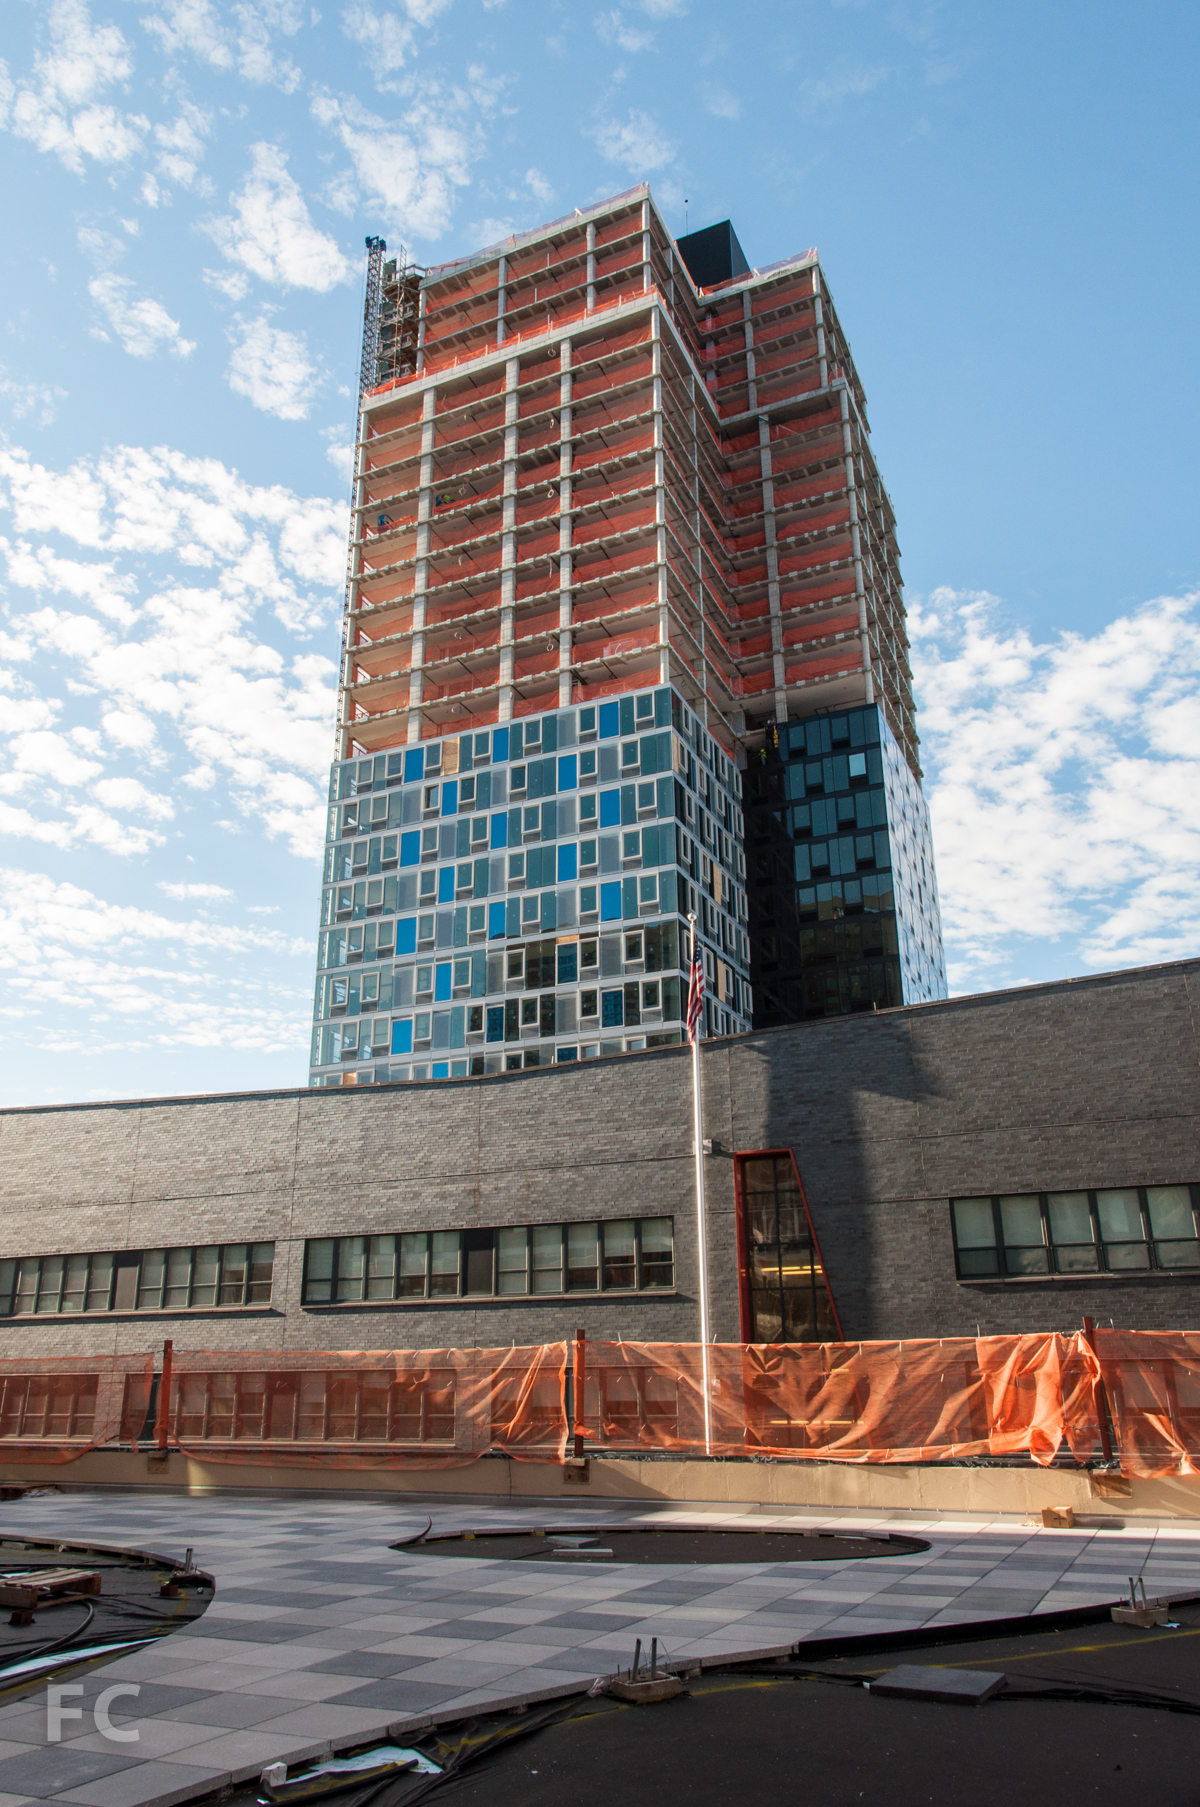 The north façade of Building B from the podium roof deck of Building A.